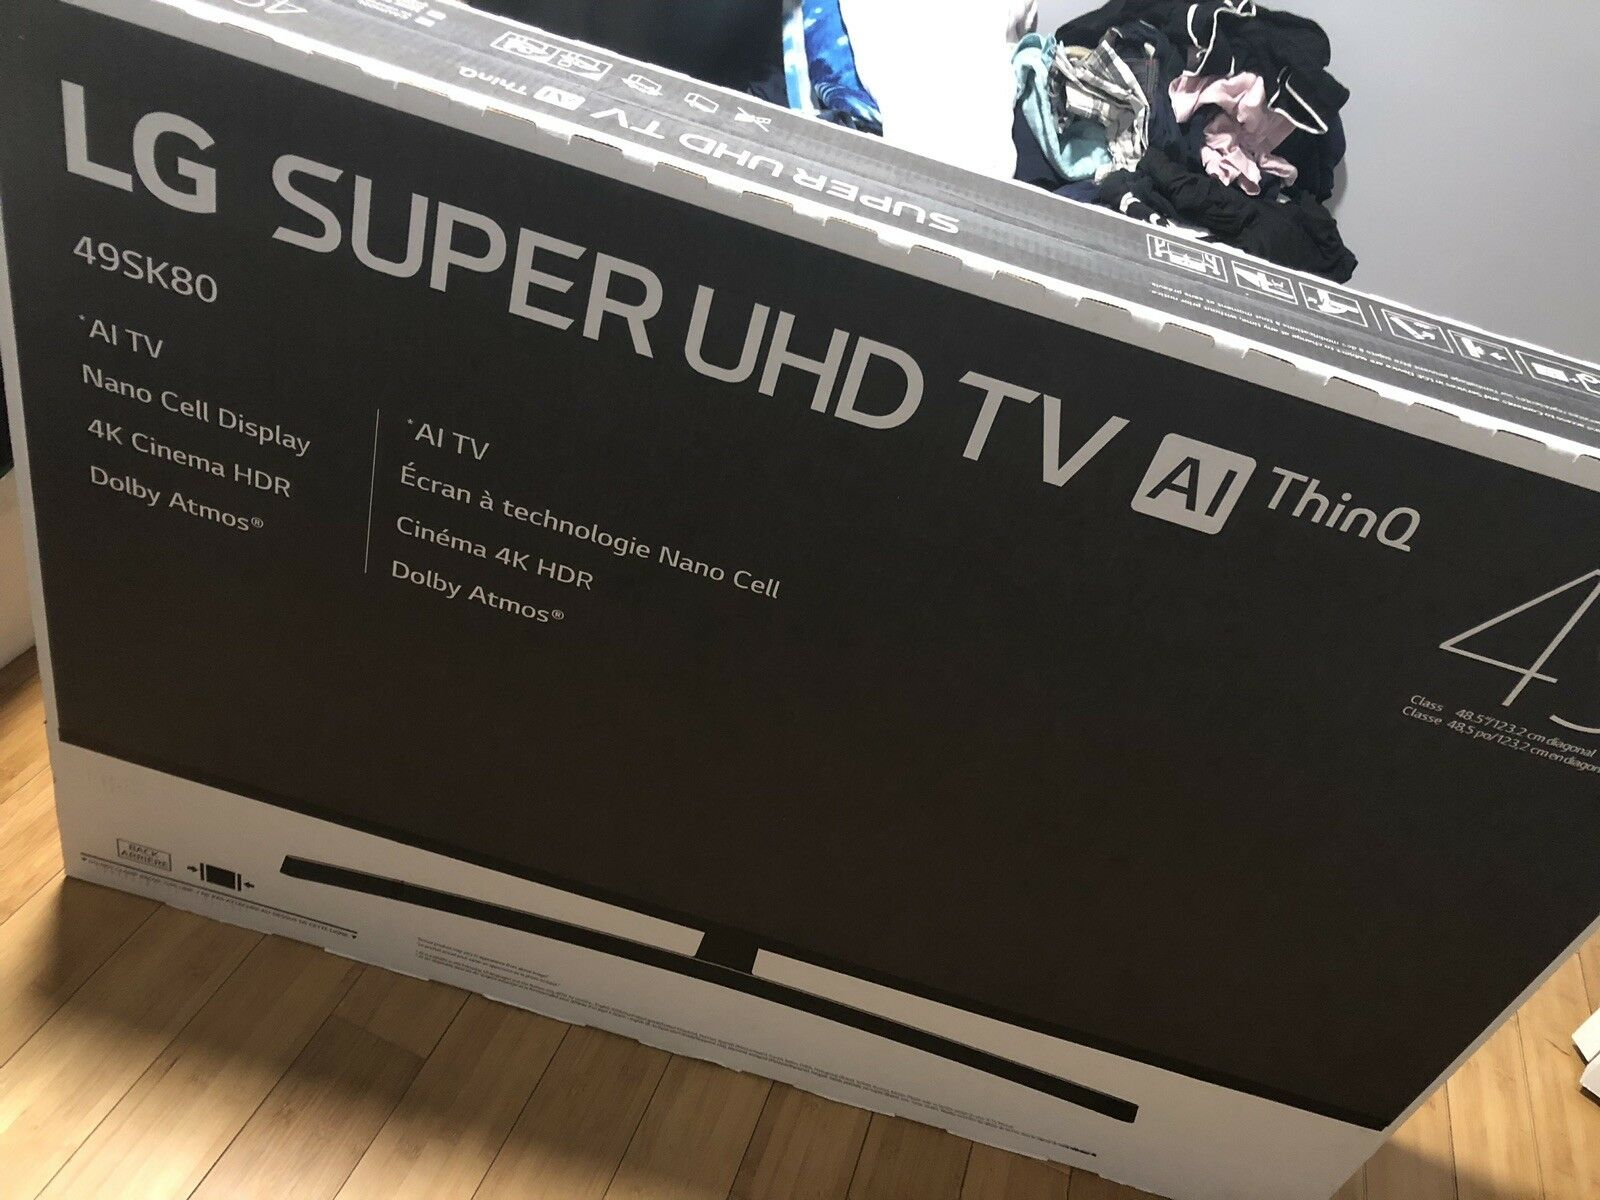 LG 49 Inch 4k HDR Smart AI ThinQ LED UHD TV. Buy it now for 650.00